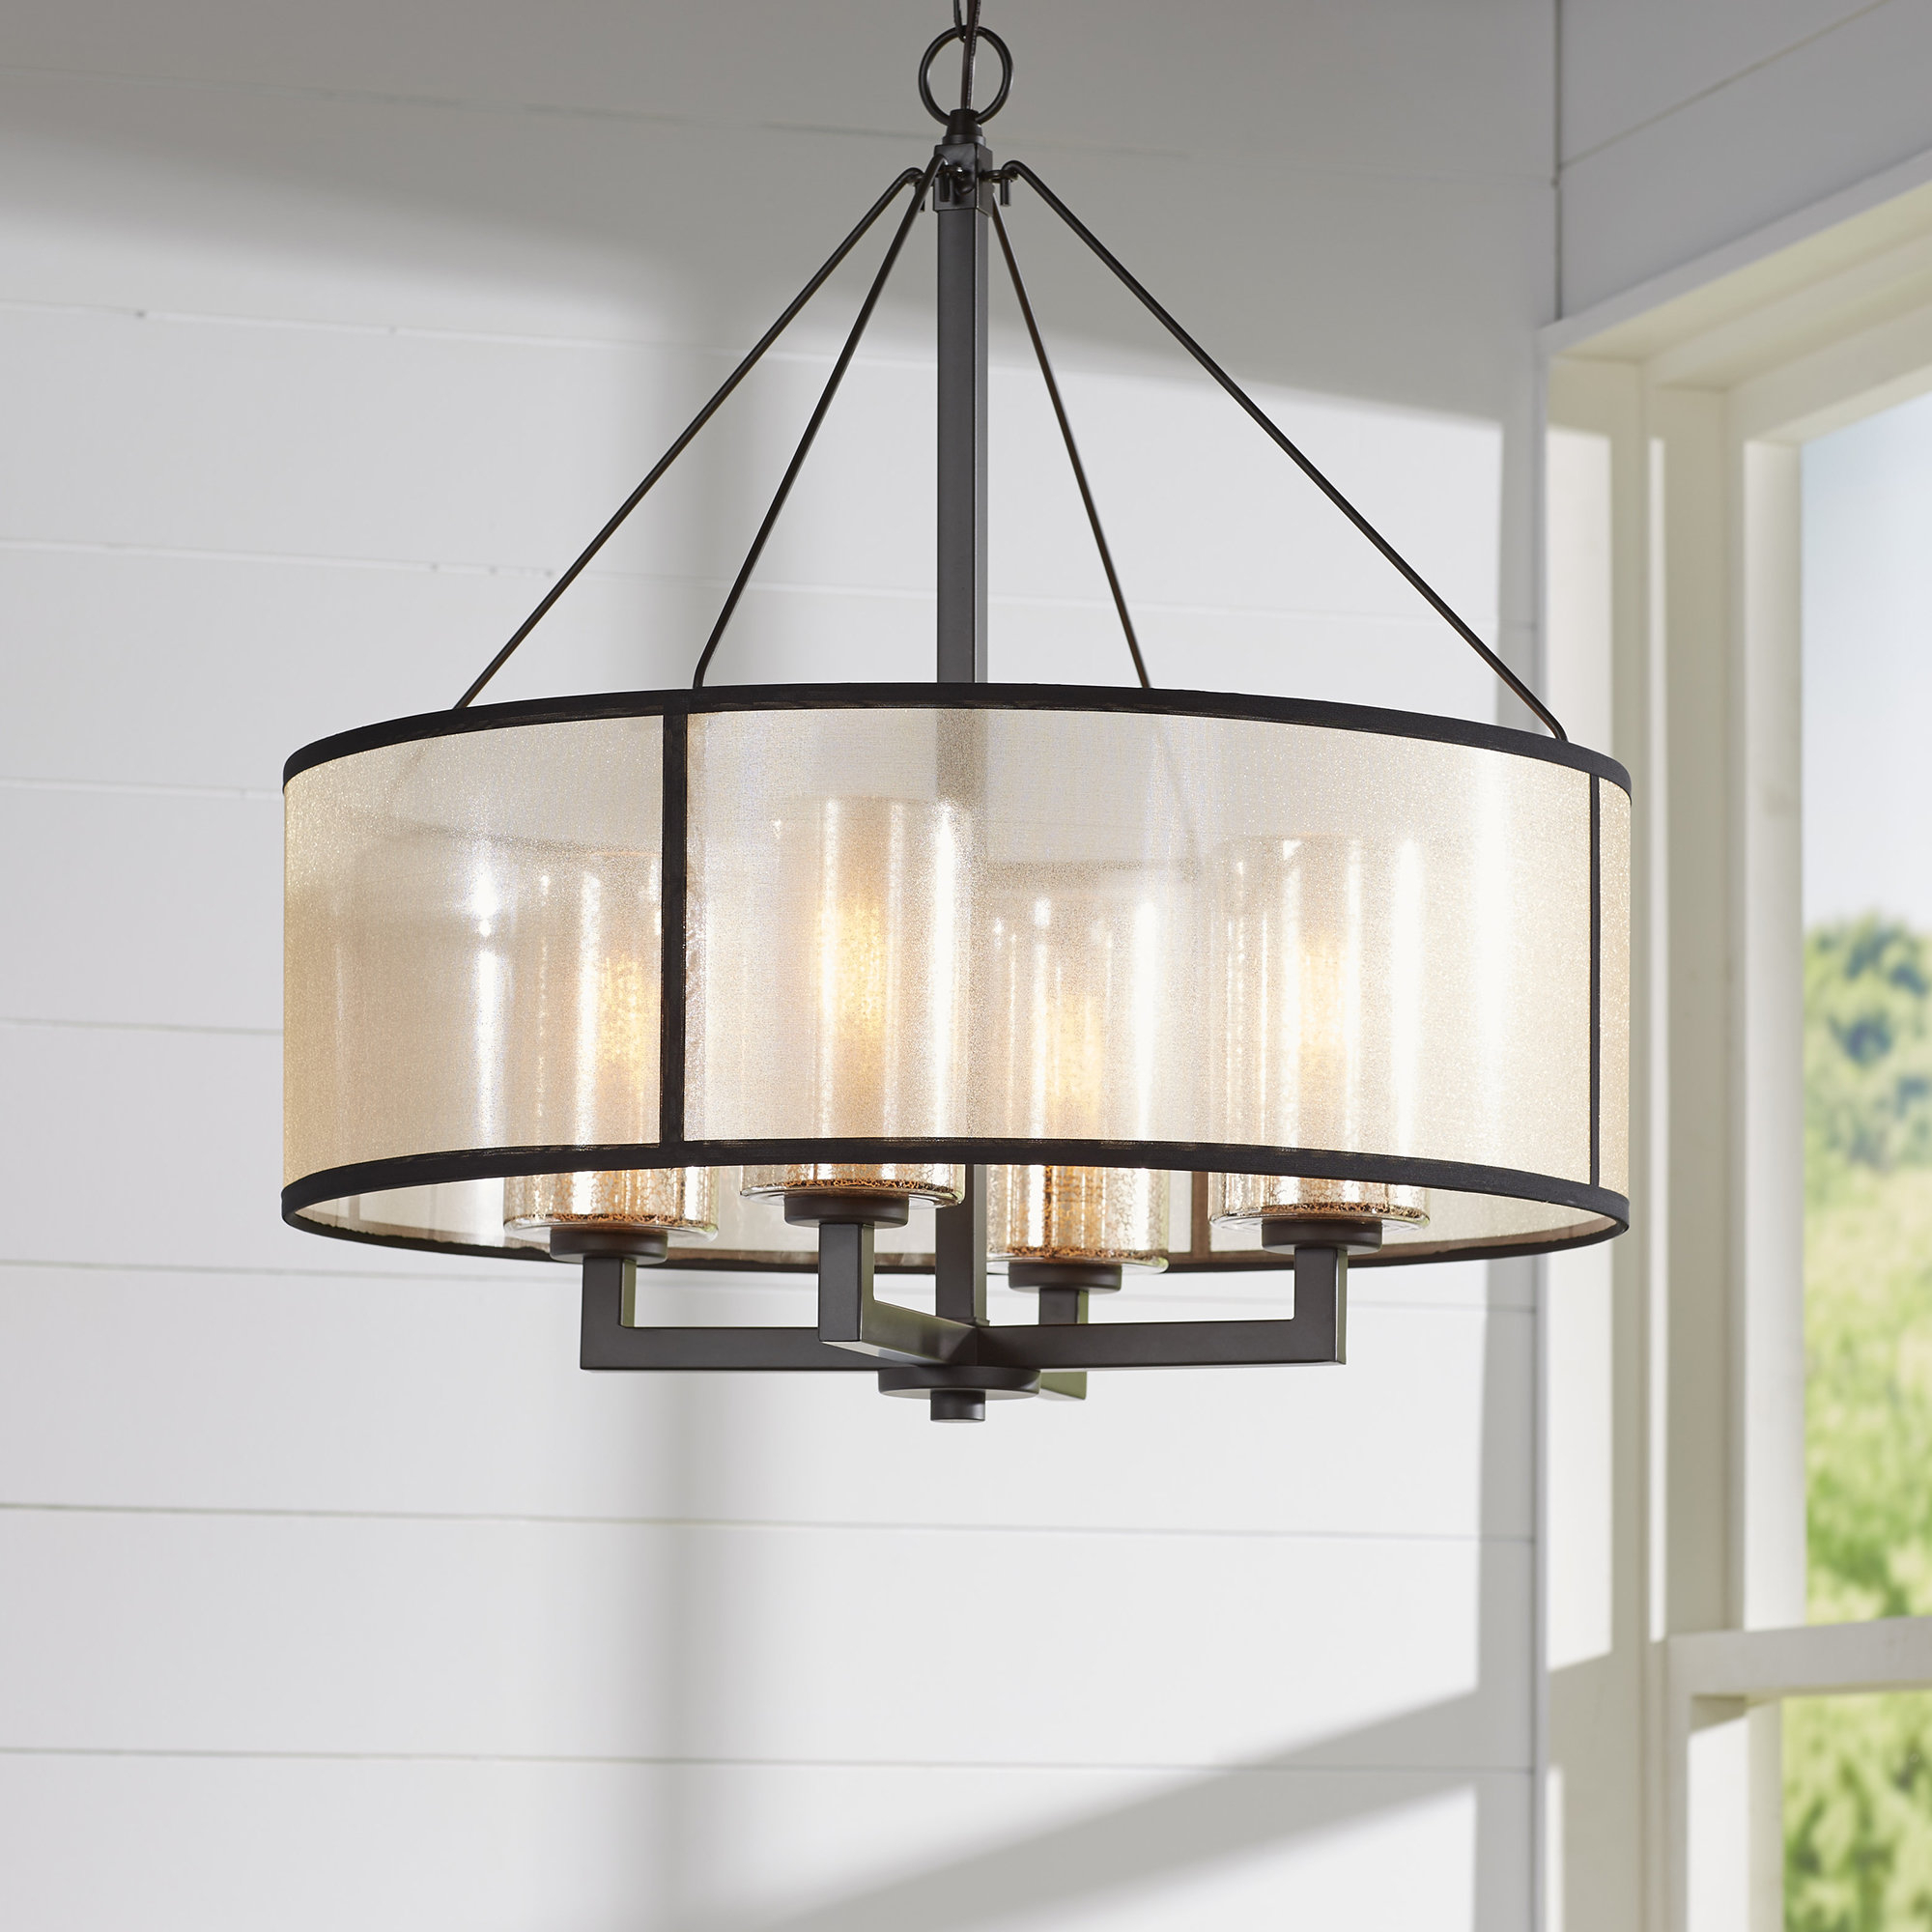 Gisselle 4 Light Drum Chandeliers Pertaining To 2019 Bisbee 4 Light Drum Chandelier (View 11 of 25)